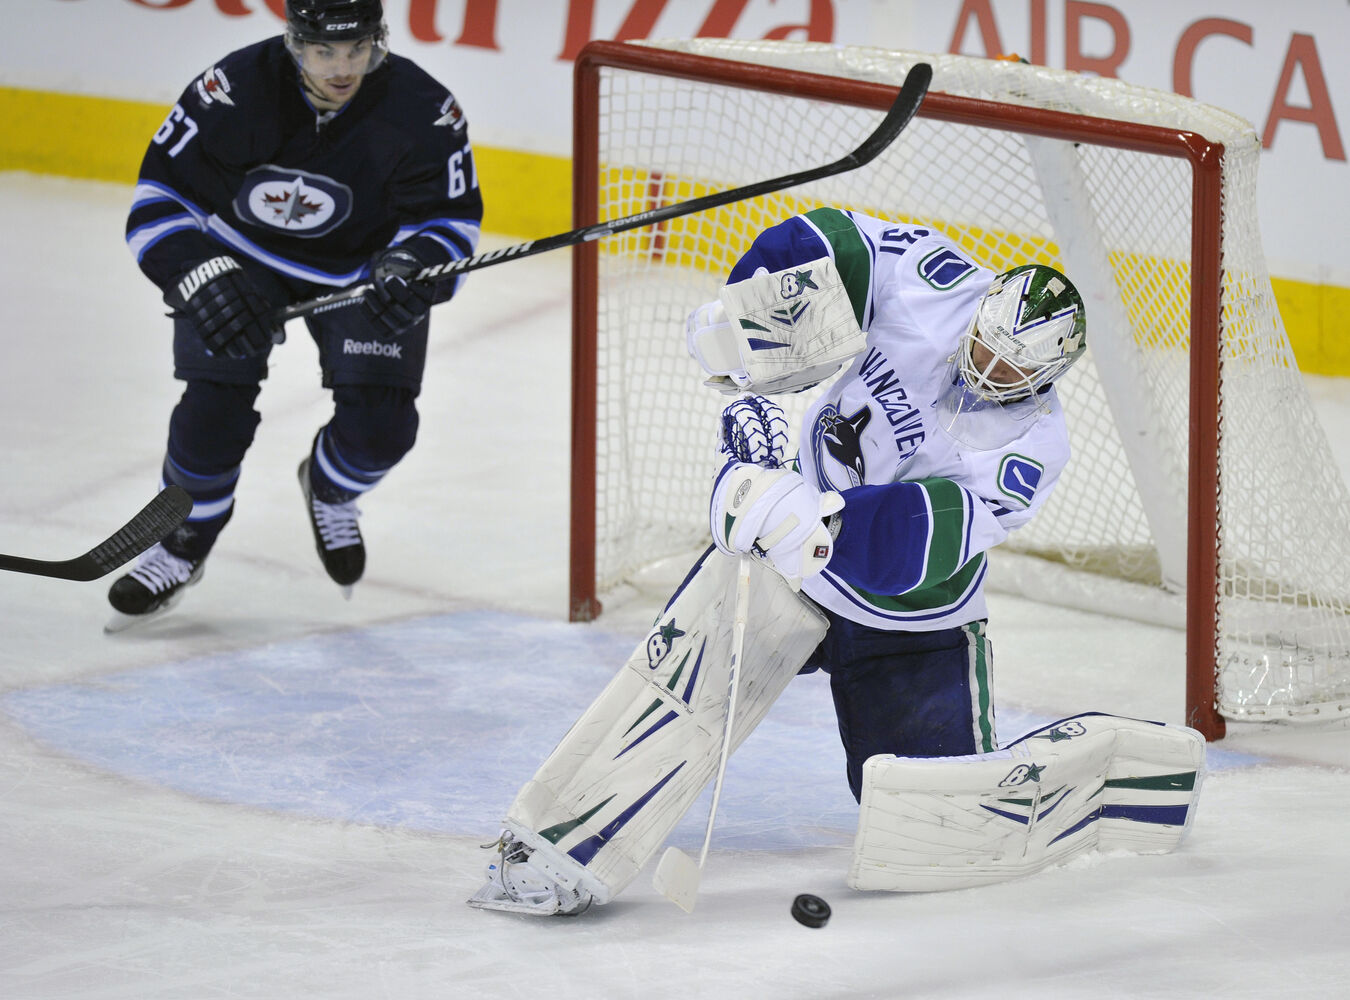 Winnipeg Jets' Michael Frolik runs at the net as Vancouver Canucks' goaltender Eddie Lack  clears the puck during the first period of Friday's game. (Fred Greenslade / Special for the Winnipeg Free Press)